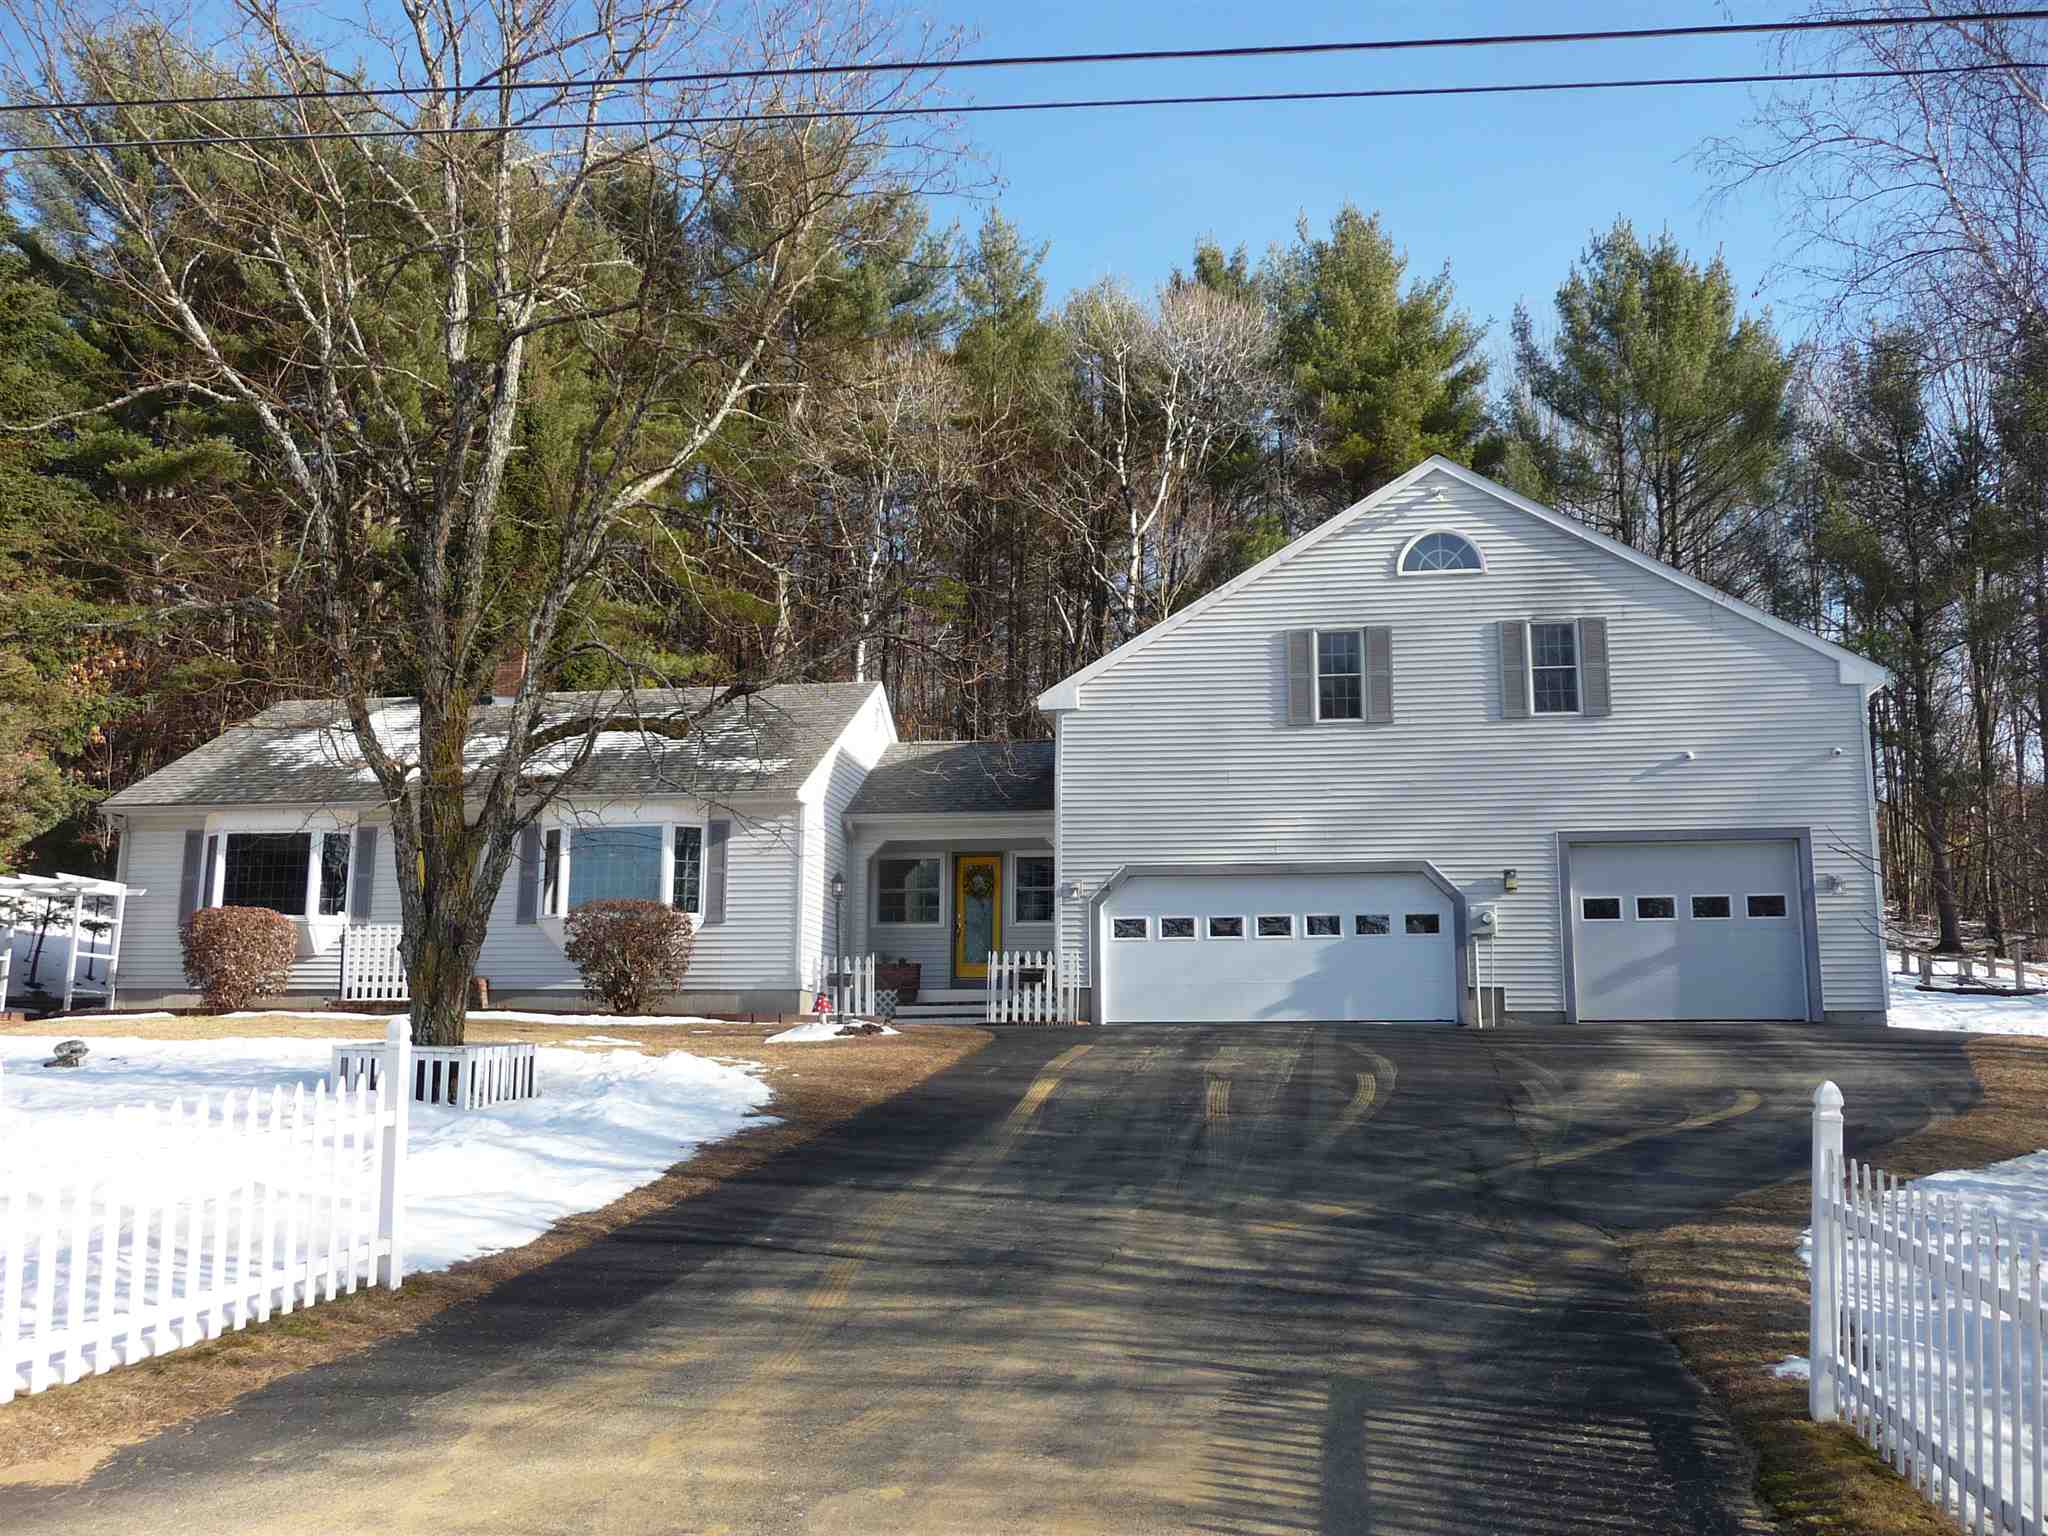 Photo of 86 Caveney Drive Northfield NH 03276